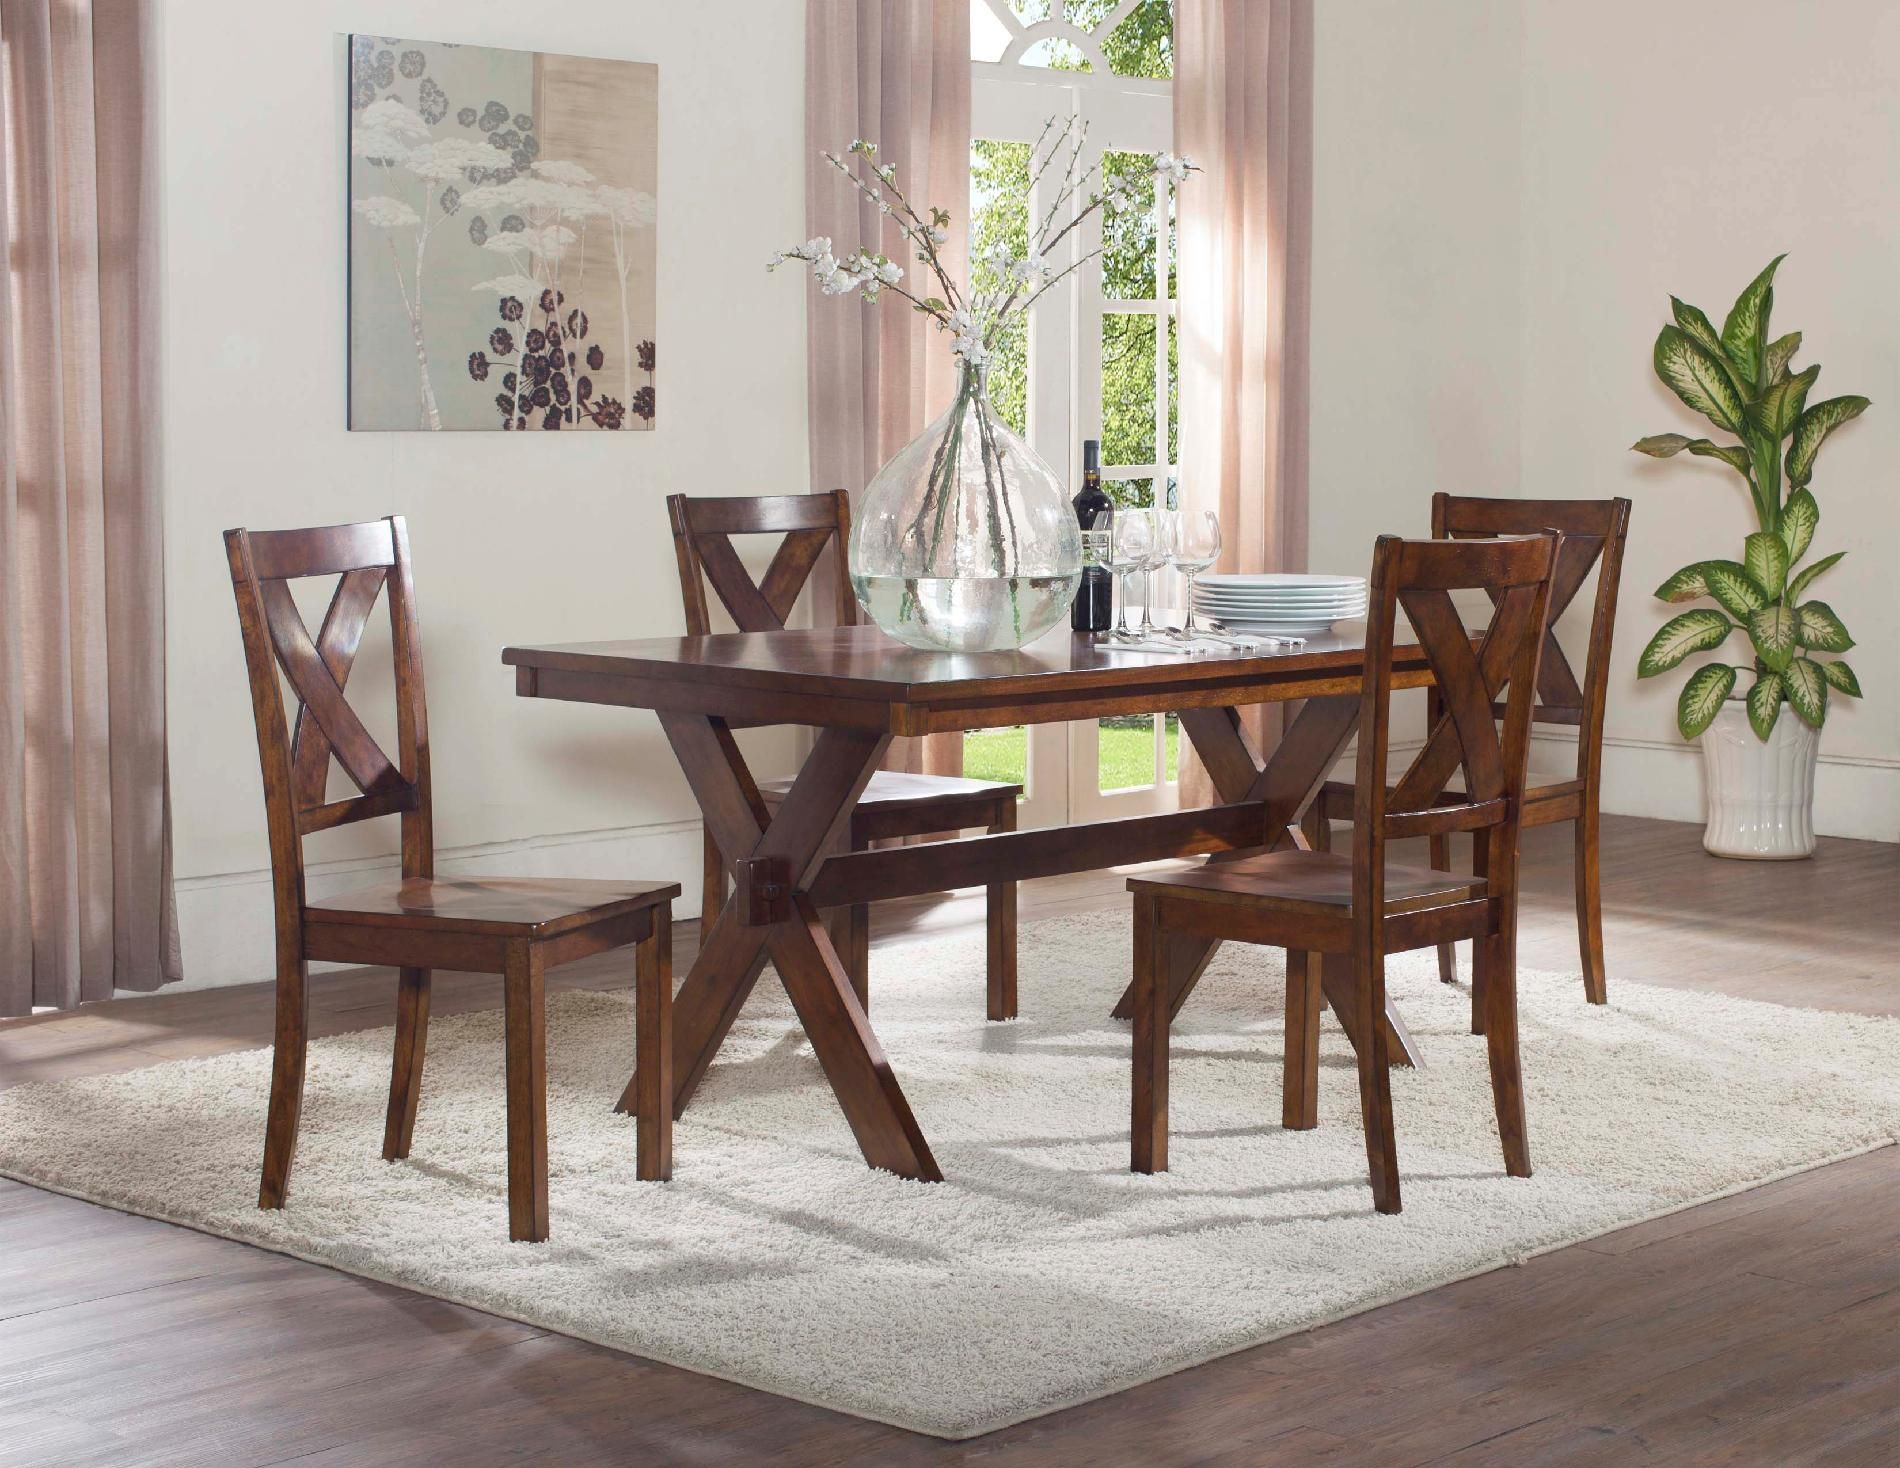 X Back Dining Set Family Dining Furniture at Sears 399 00 for 5